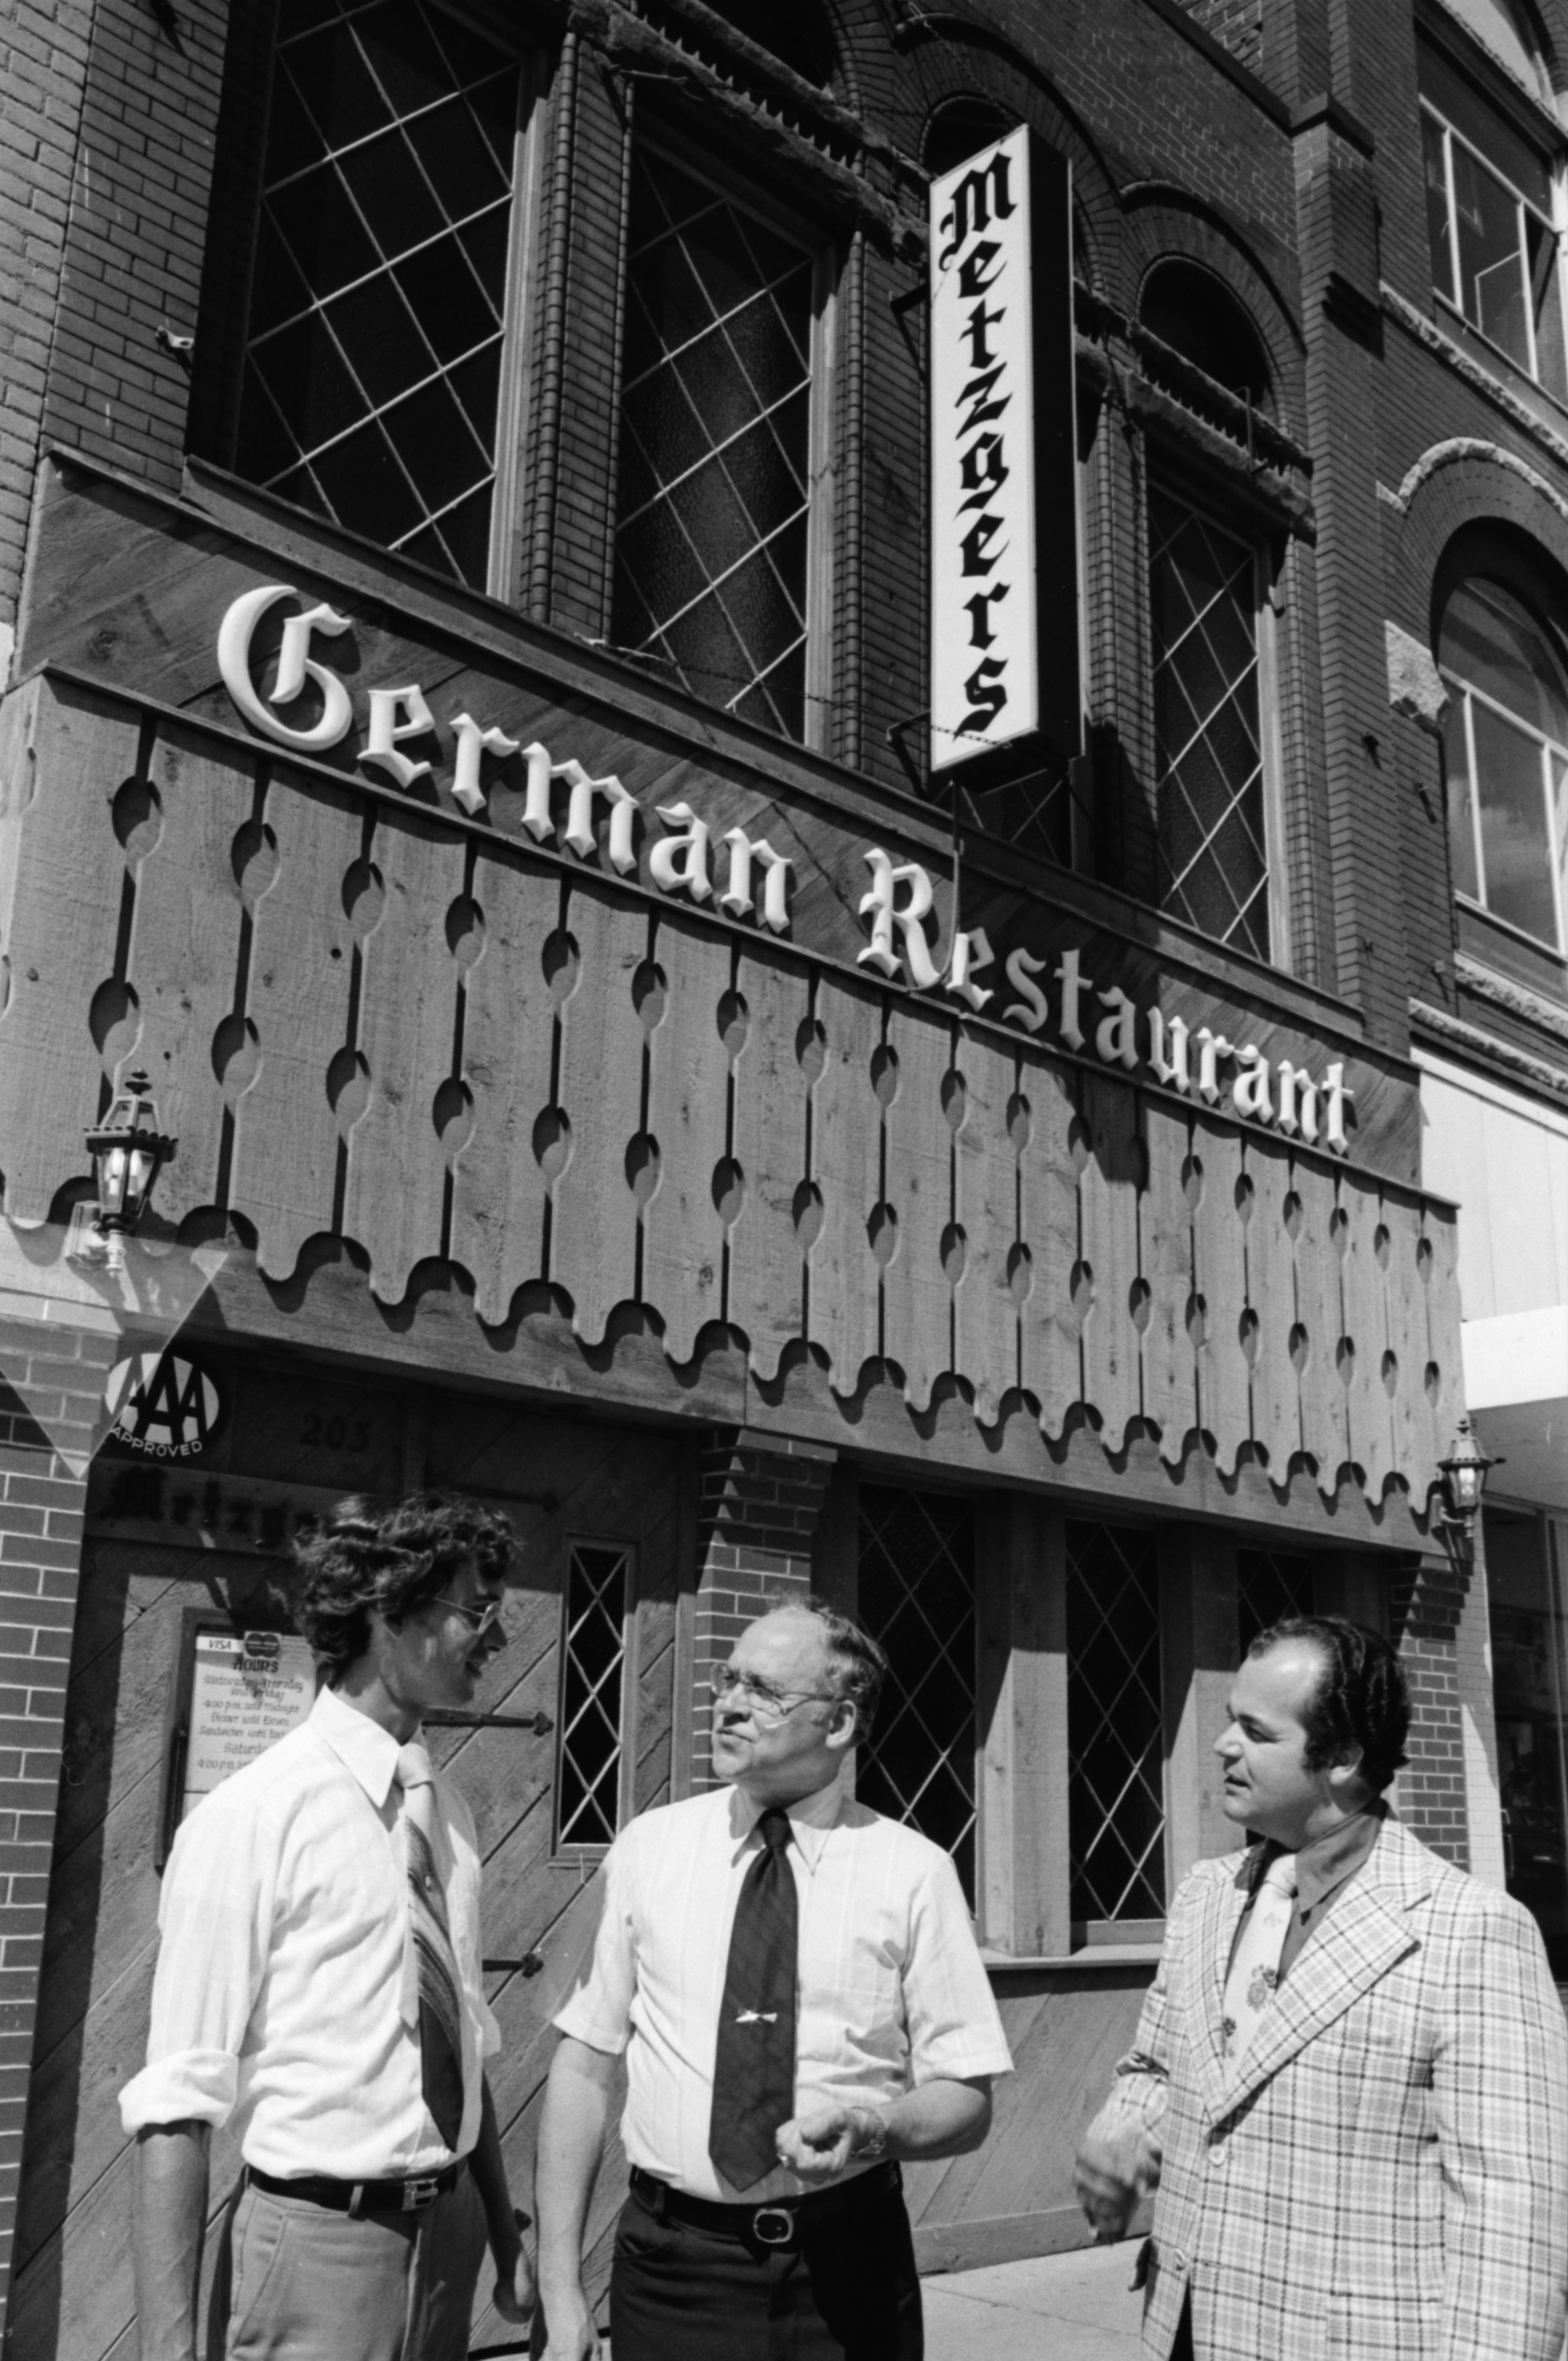 Walter Metzger, son John, and restaurant manager Douglas Kalis, July 1978 image